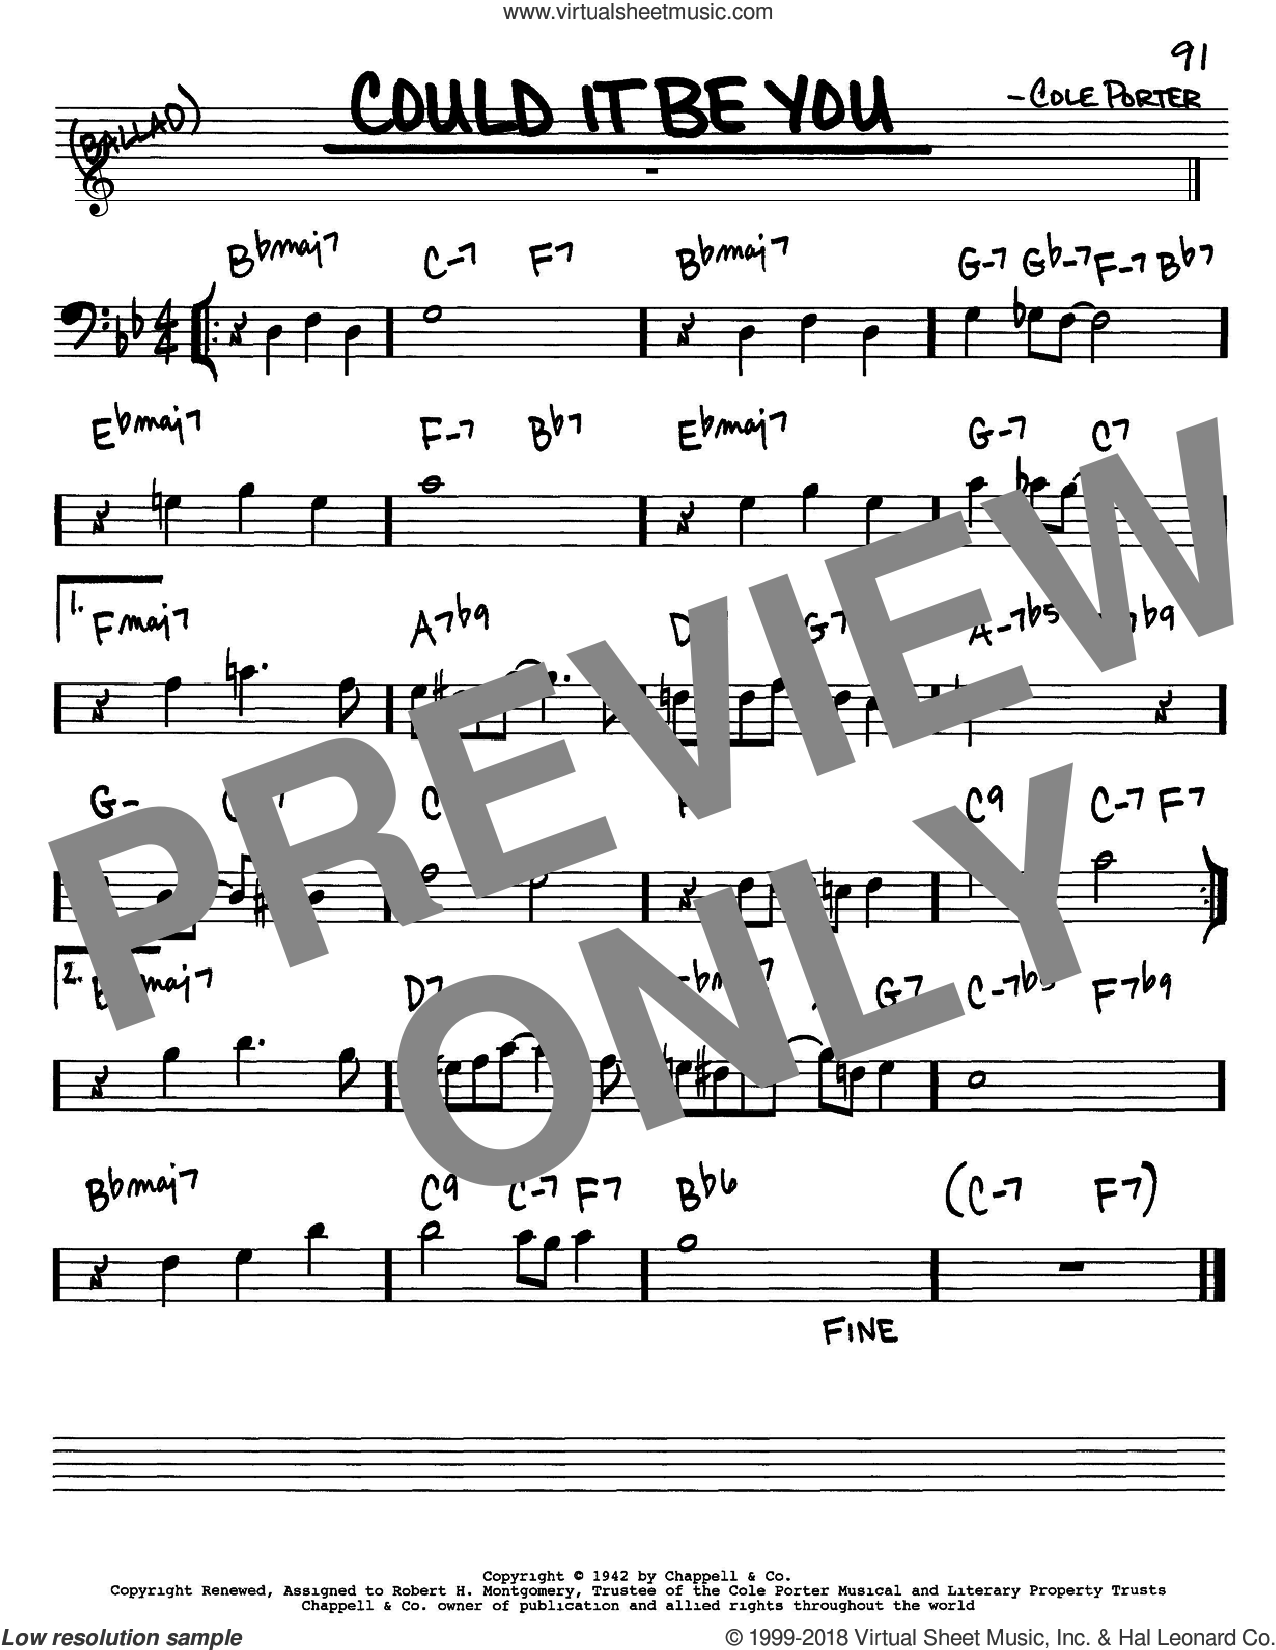 Could It Be You sheet music for voice and other instruments (bass clef) by Cole Porter, intermediate skill level